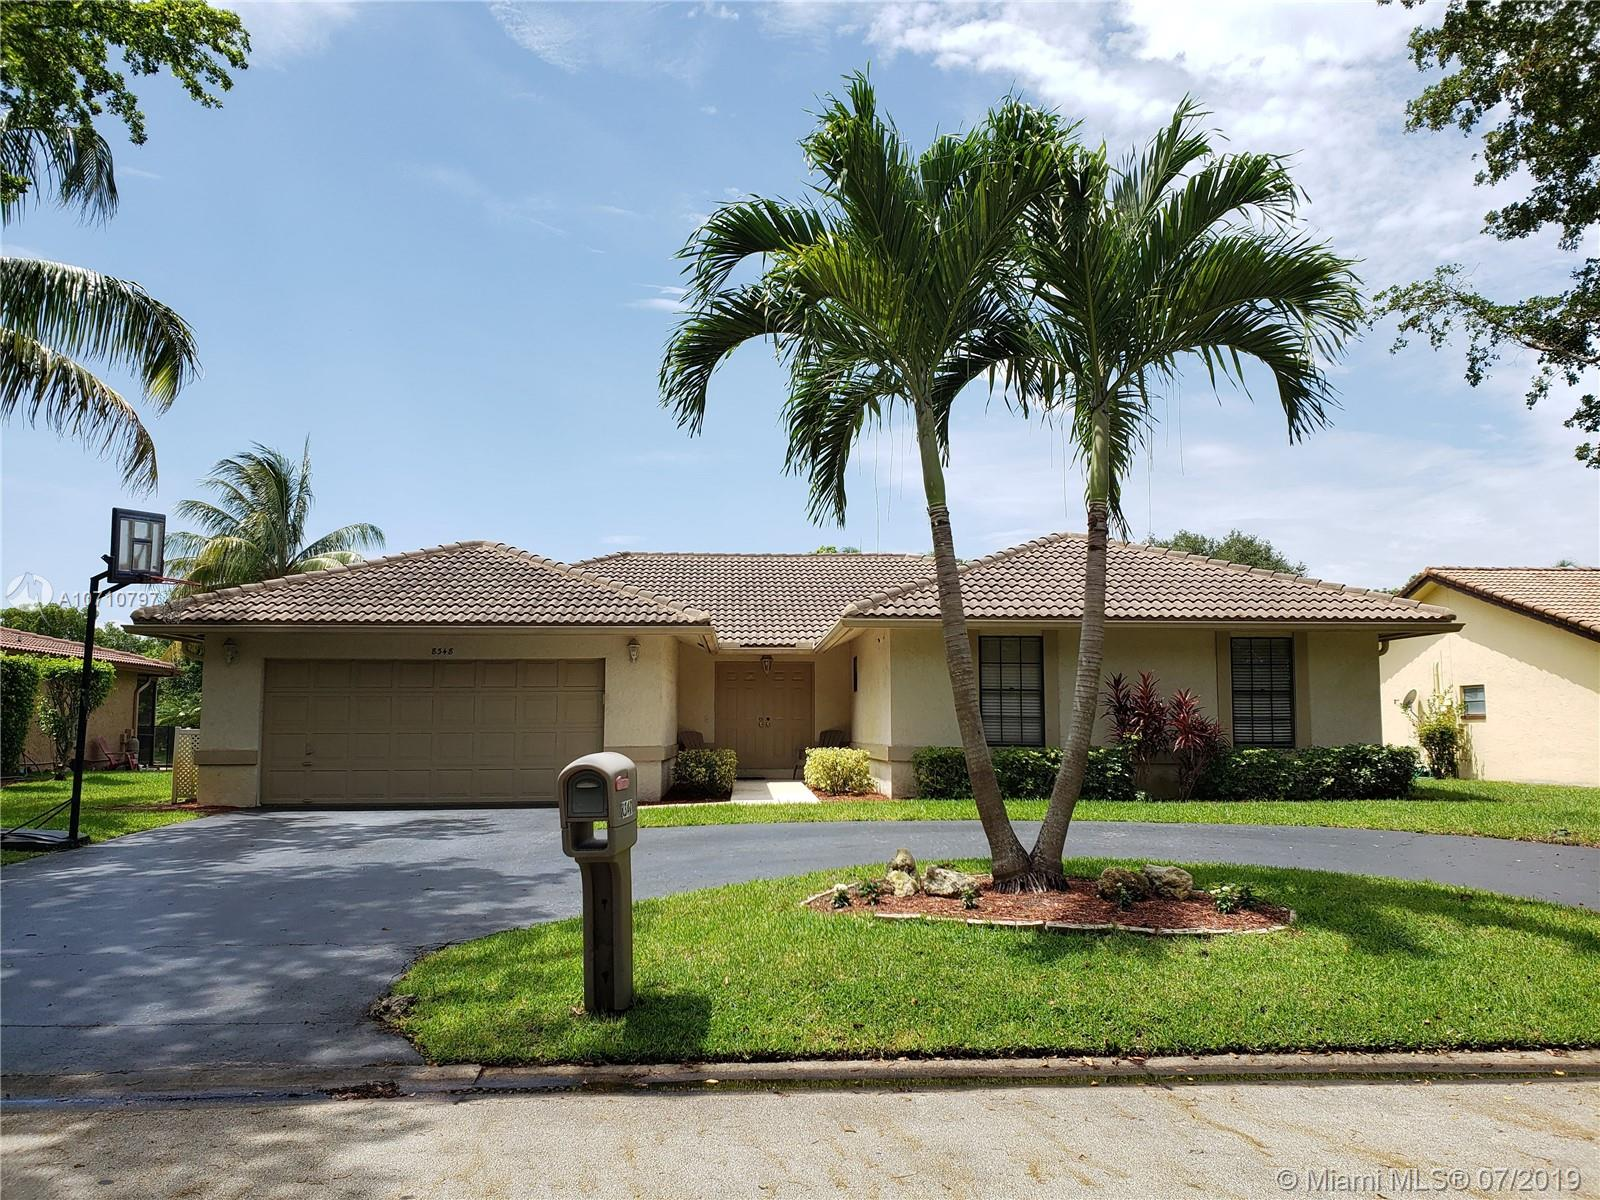 8348 NW 7th St, Coral Springs, FL 33071